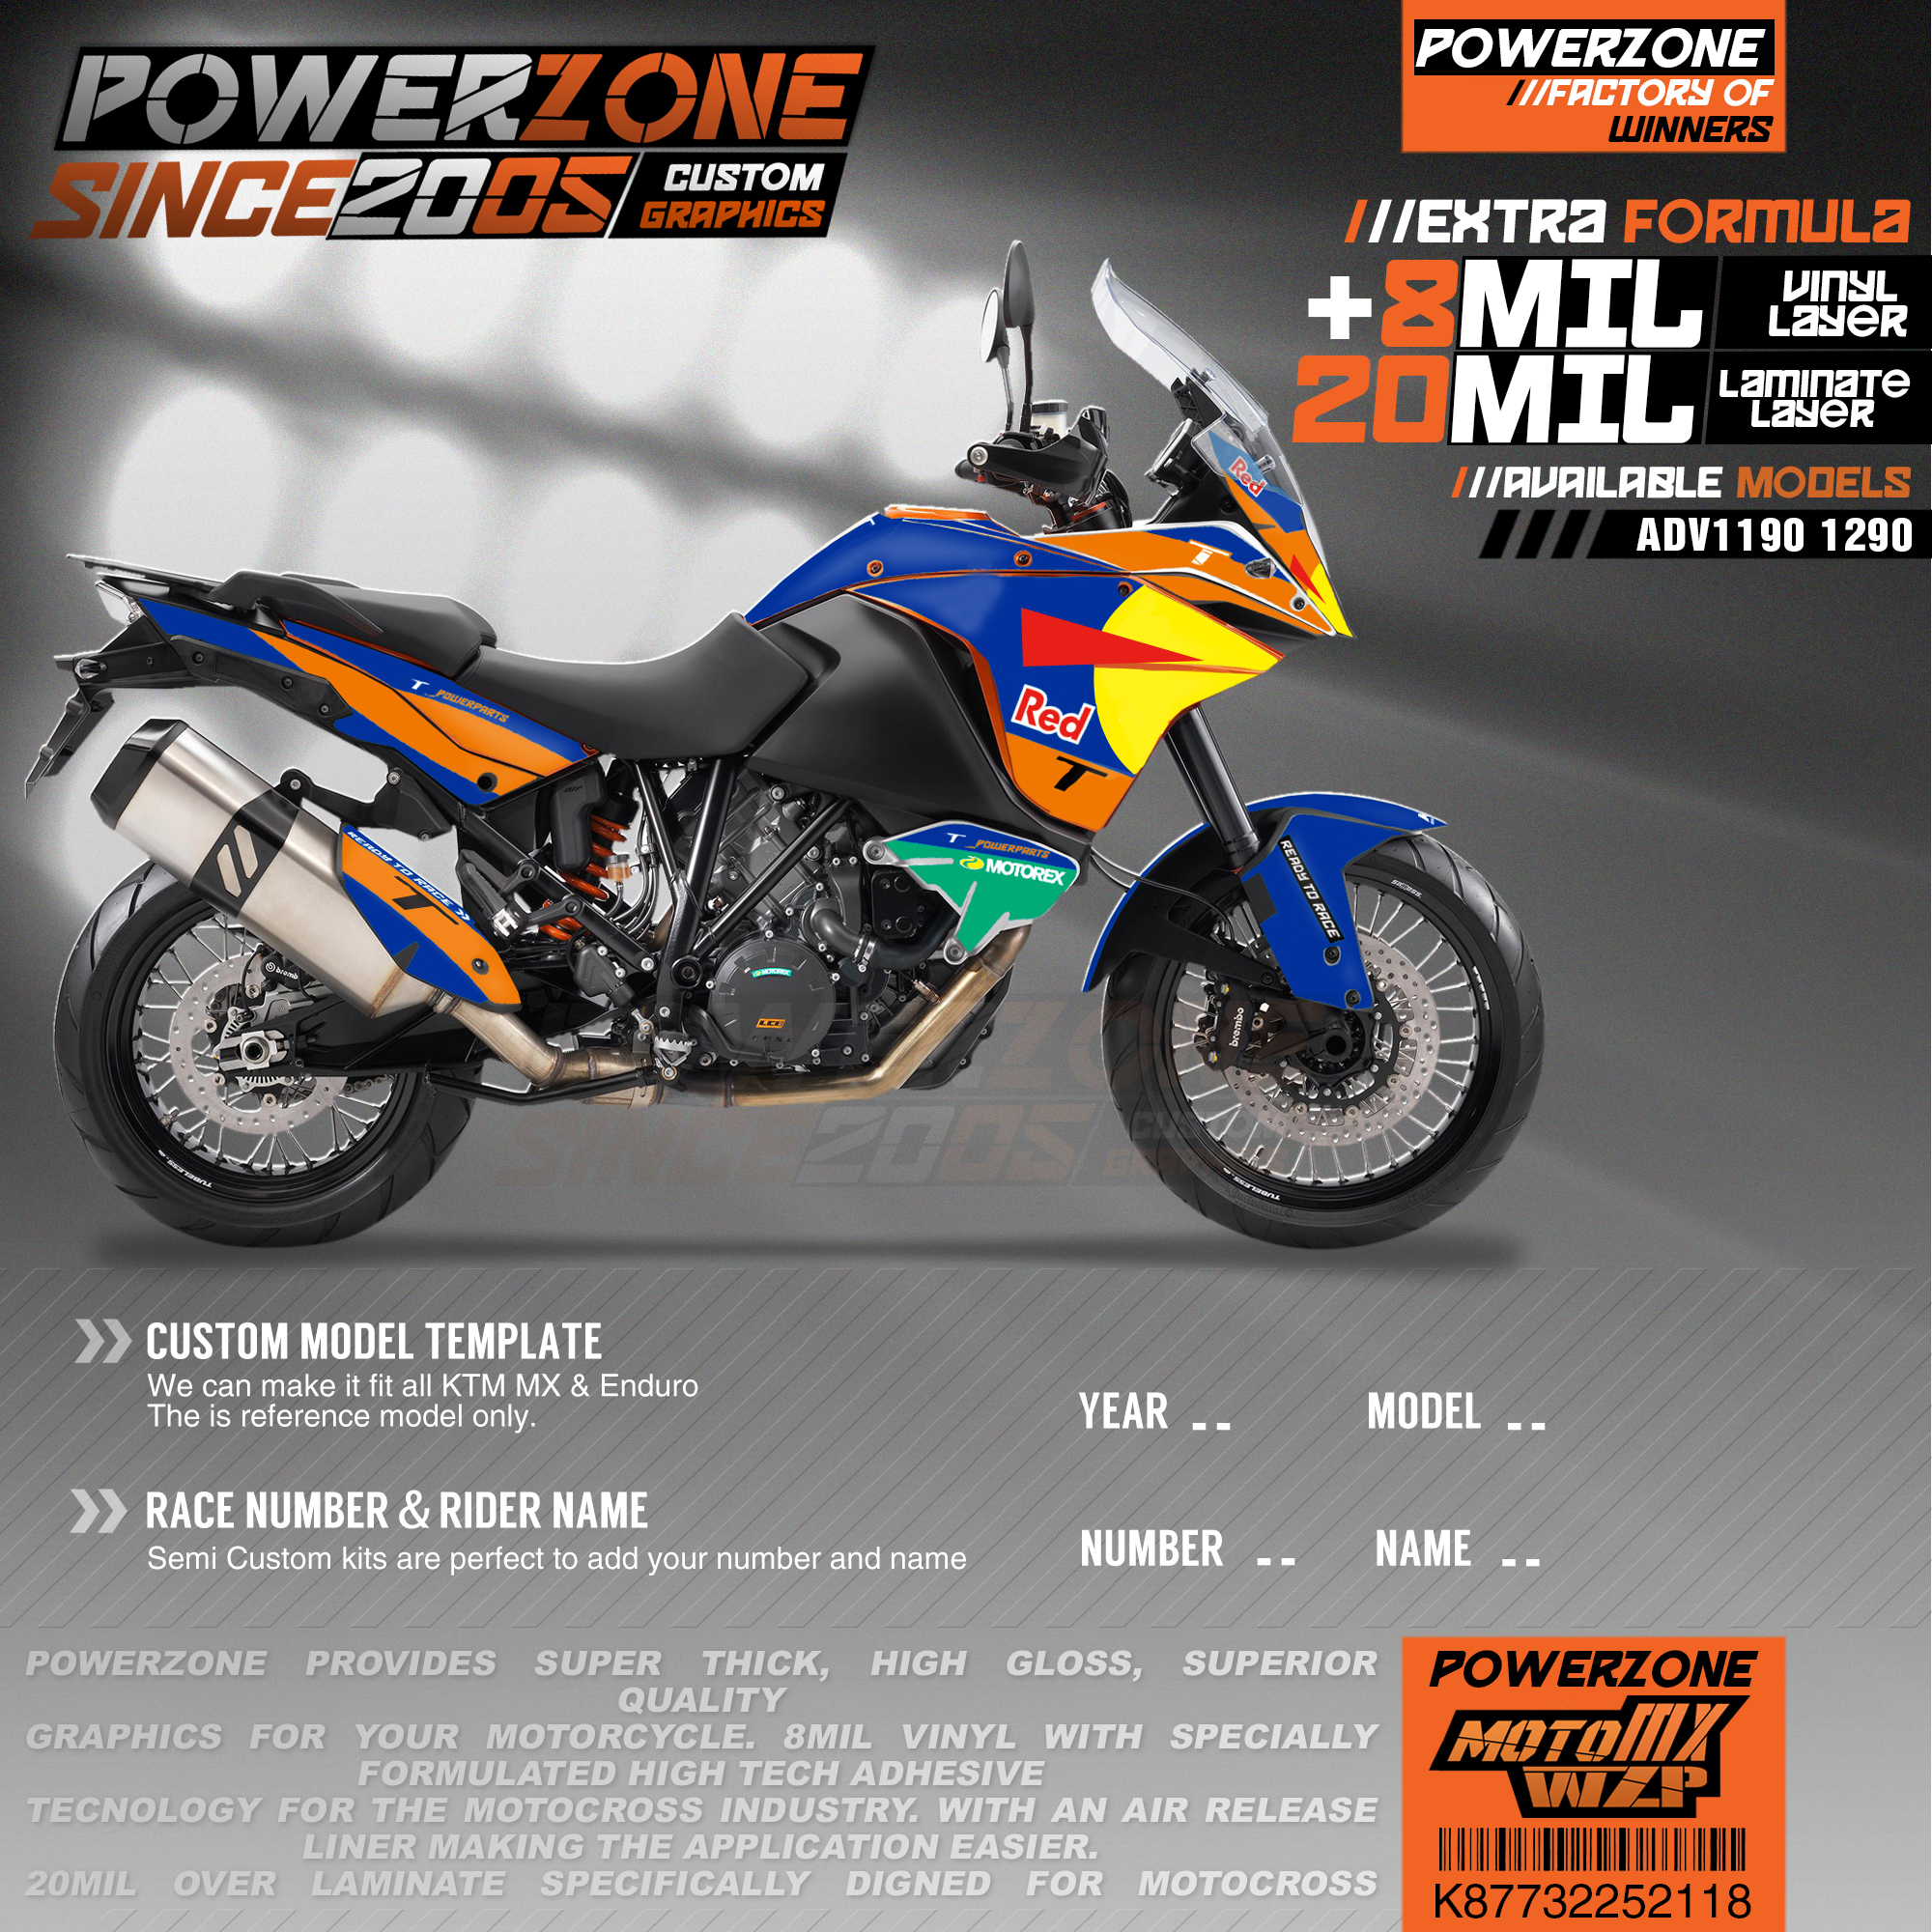 PowerZone Custom Team Graphics Backgrounds Decals 3M Stickers Kit For KTM ADV 1050 1090 1190 1290 118